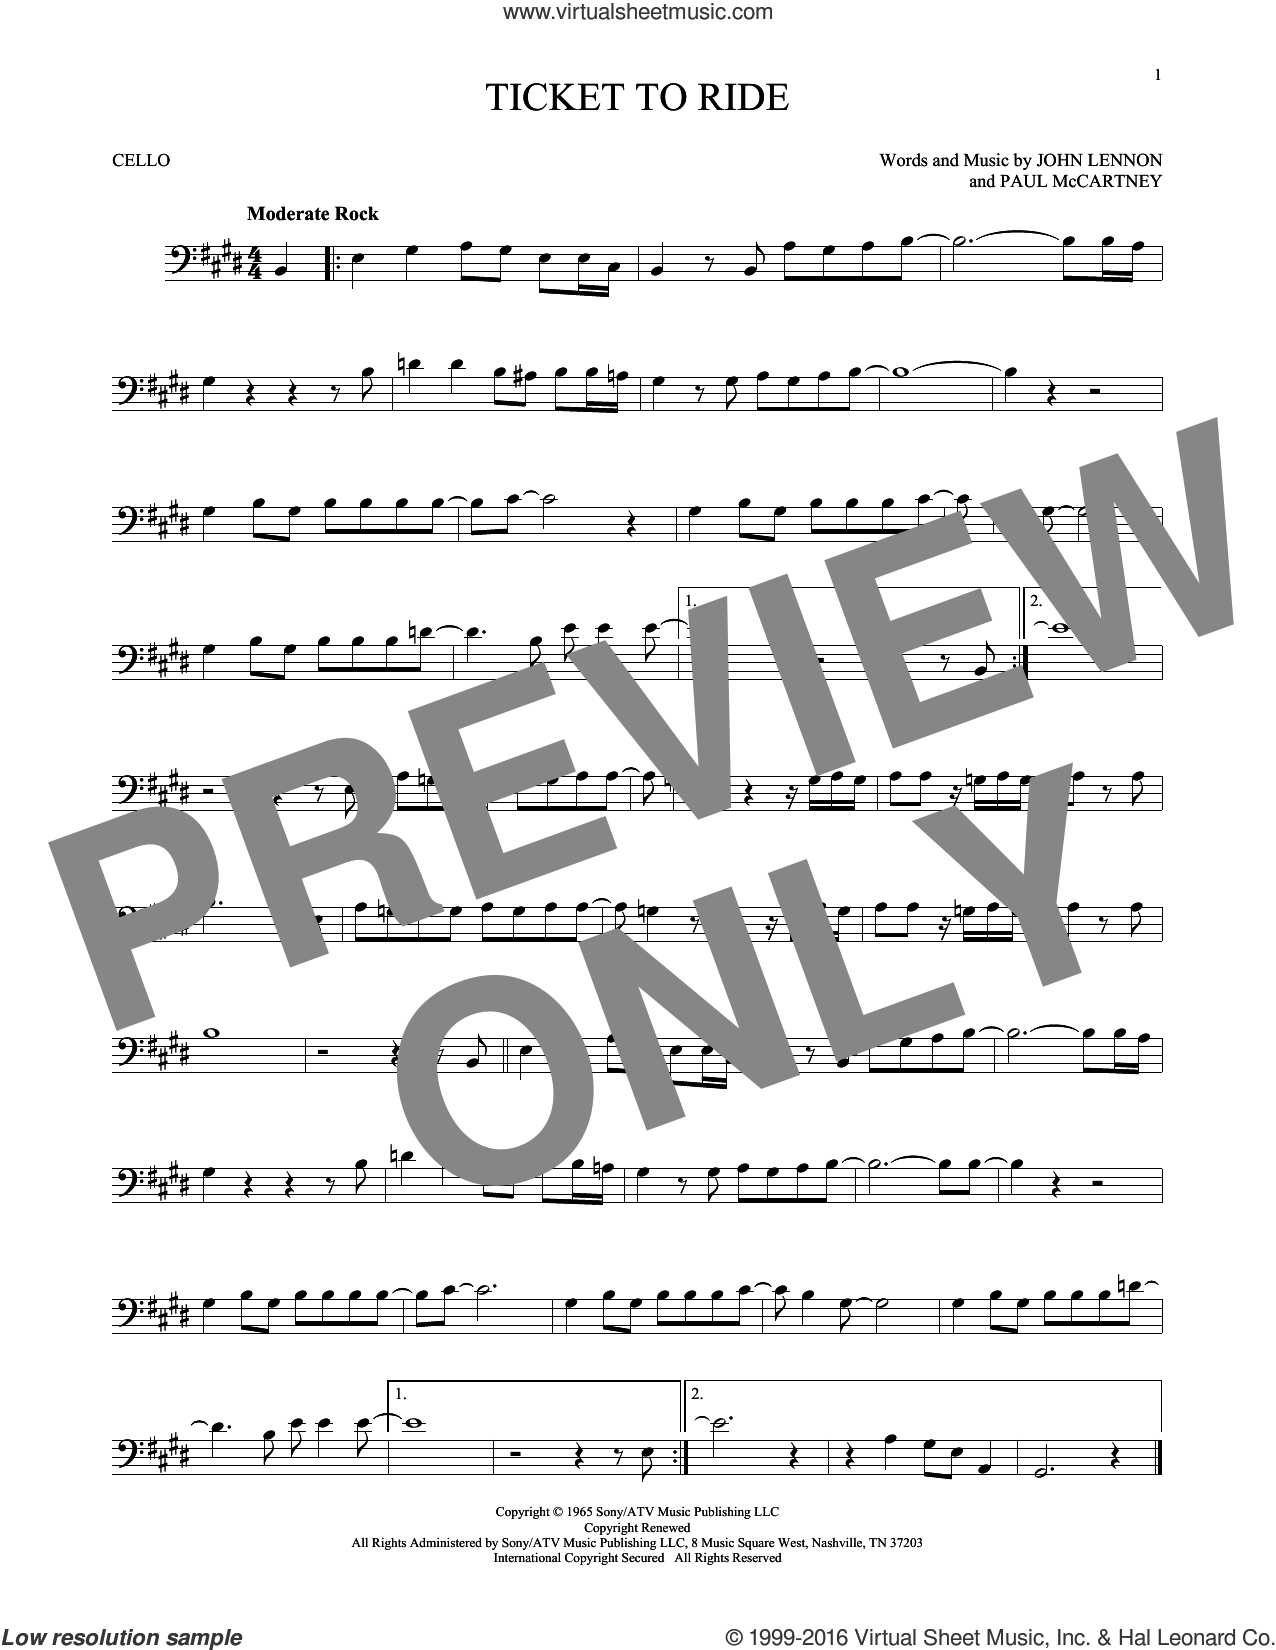 Ticket To Ride sheet music for cello solo by Paul McCartney